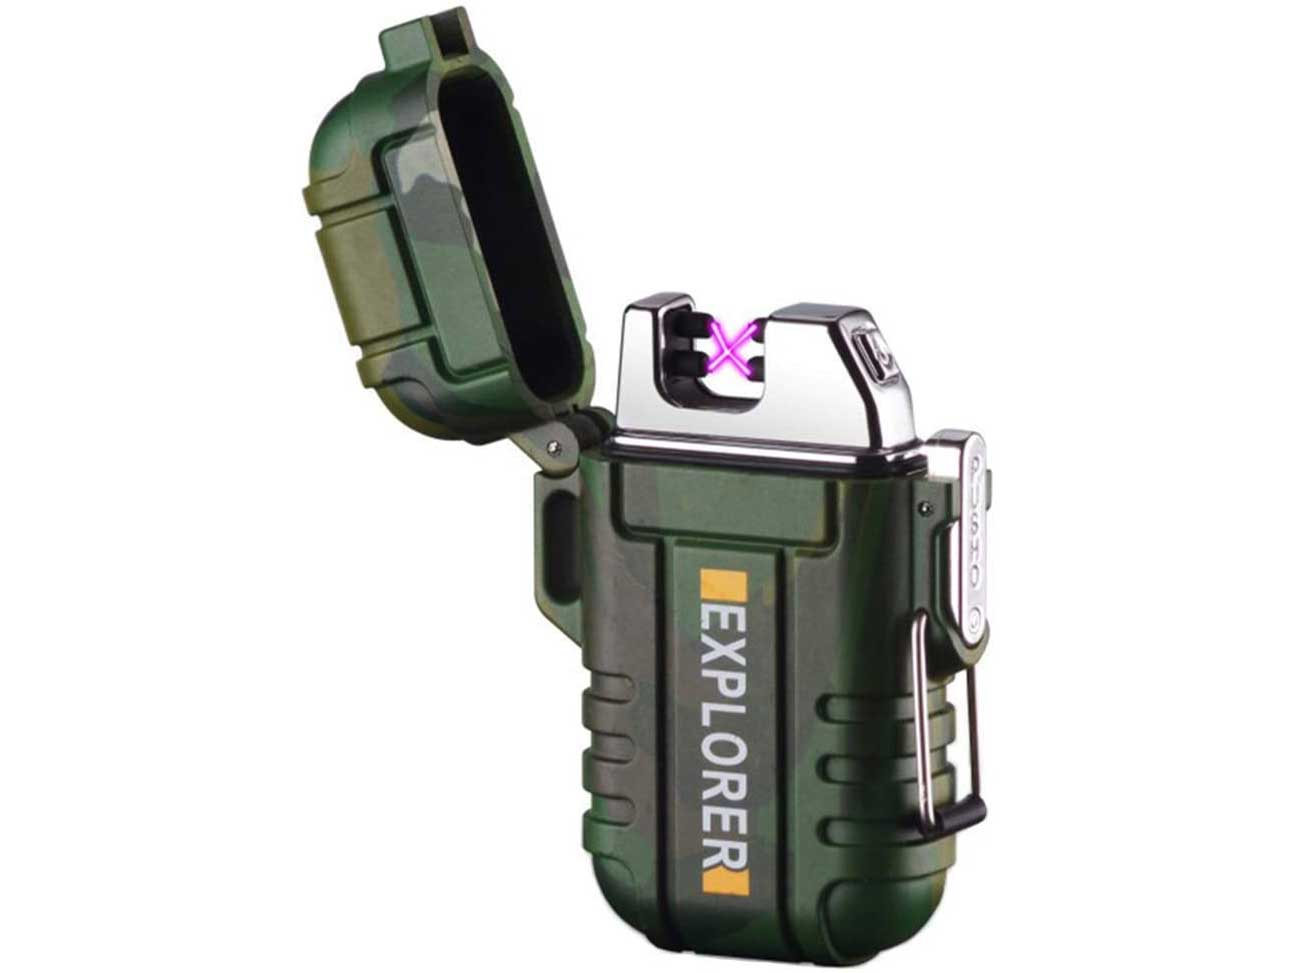 lcfun Waterproof Lighter Outdoor Windproof Lighter Dual Arc Lighter Electric Lighters USB Rechargeable-Flameless-Plasma Lighter for Cigarette,Camping,Hiking,Outdoor Adventure,Survival Tactical